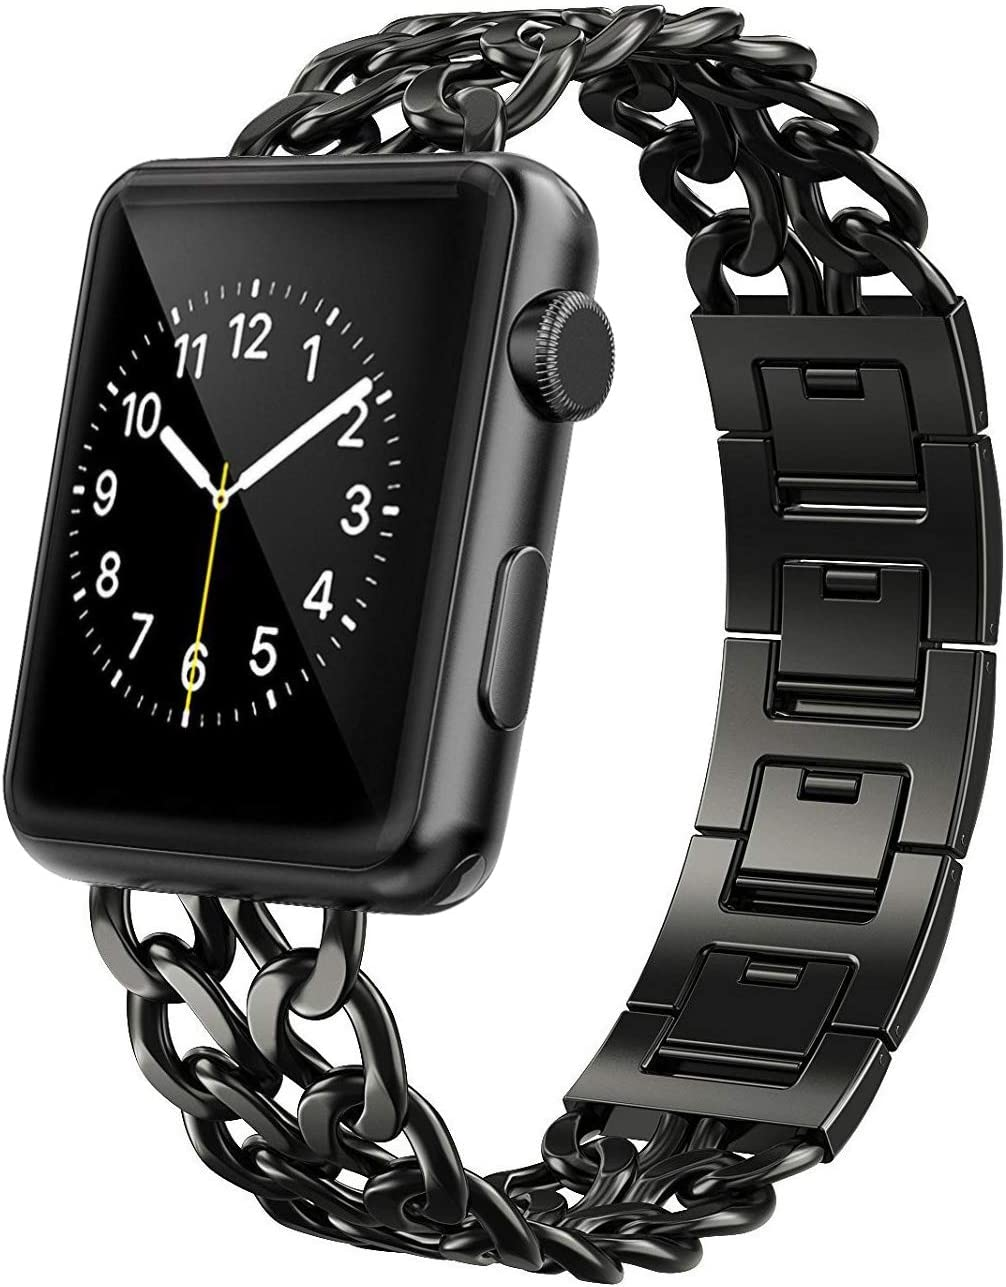 AmzAokay Replacement bands Compatible for Apple Watch 38mm 42mm Stainless Steel Metal Cowboy Chain Strap Wrist Band for Apple Watch 40mm 44mm Series 5 4 3 2 1 Sport and Edition (Black, 42mm/44mm)